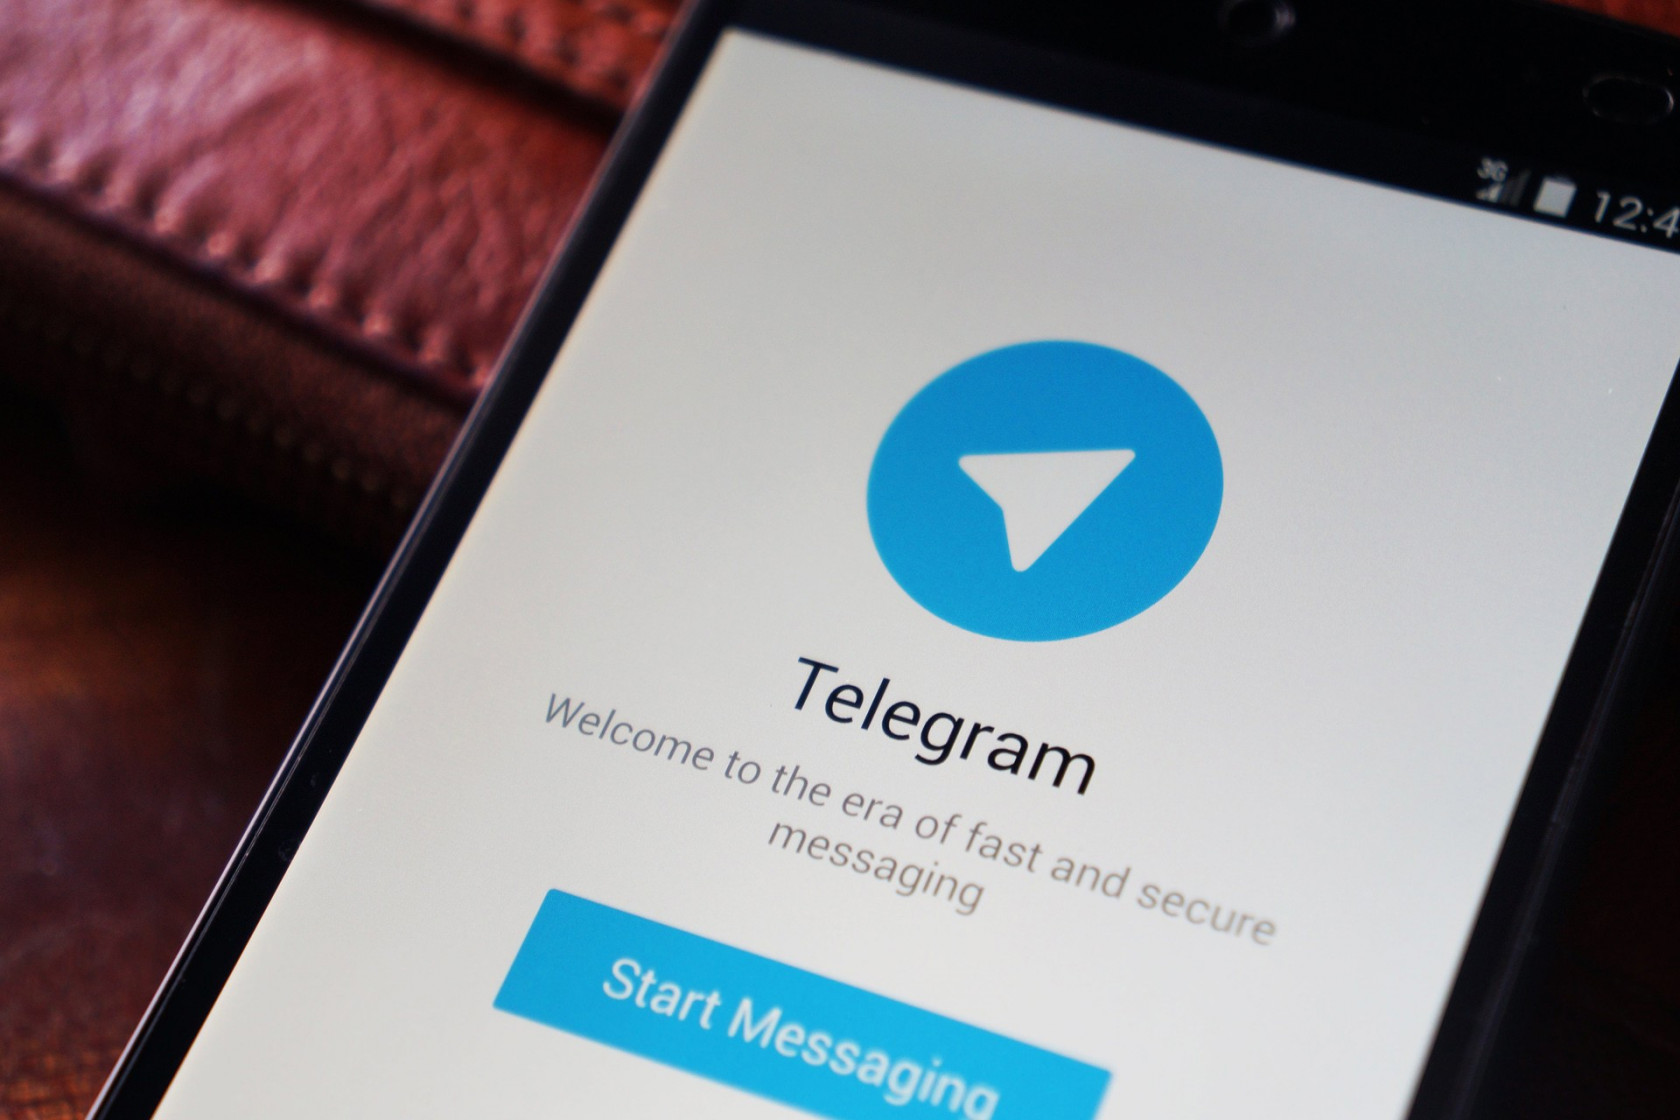 Telegram forced to give encryption keys to Russian authorities